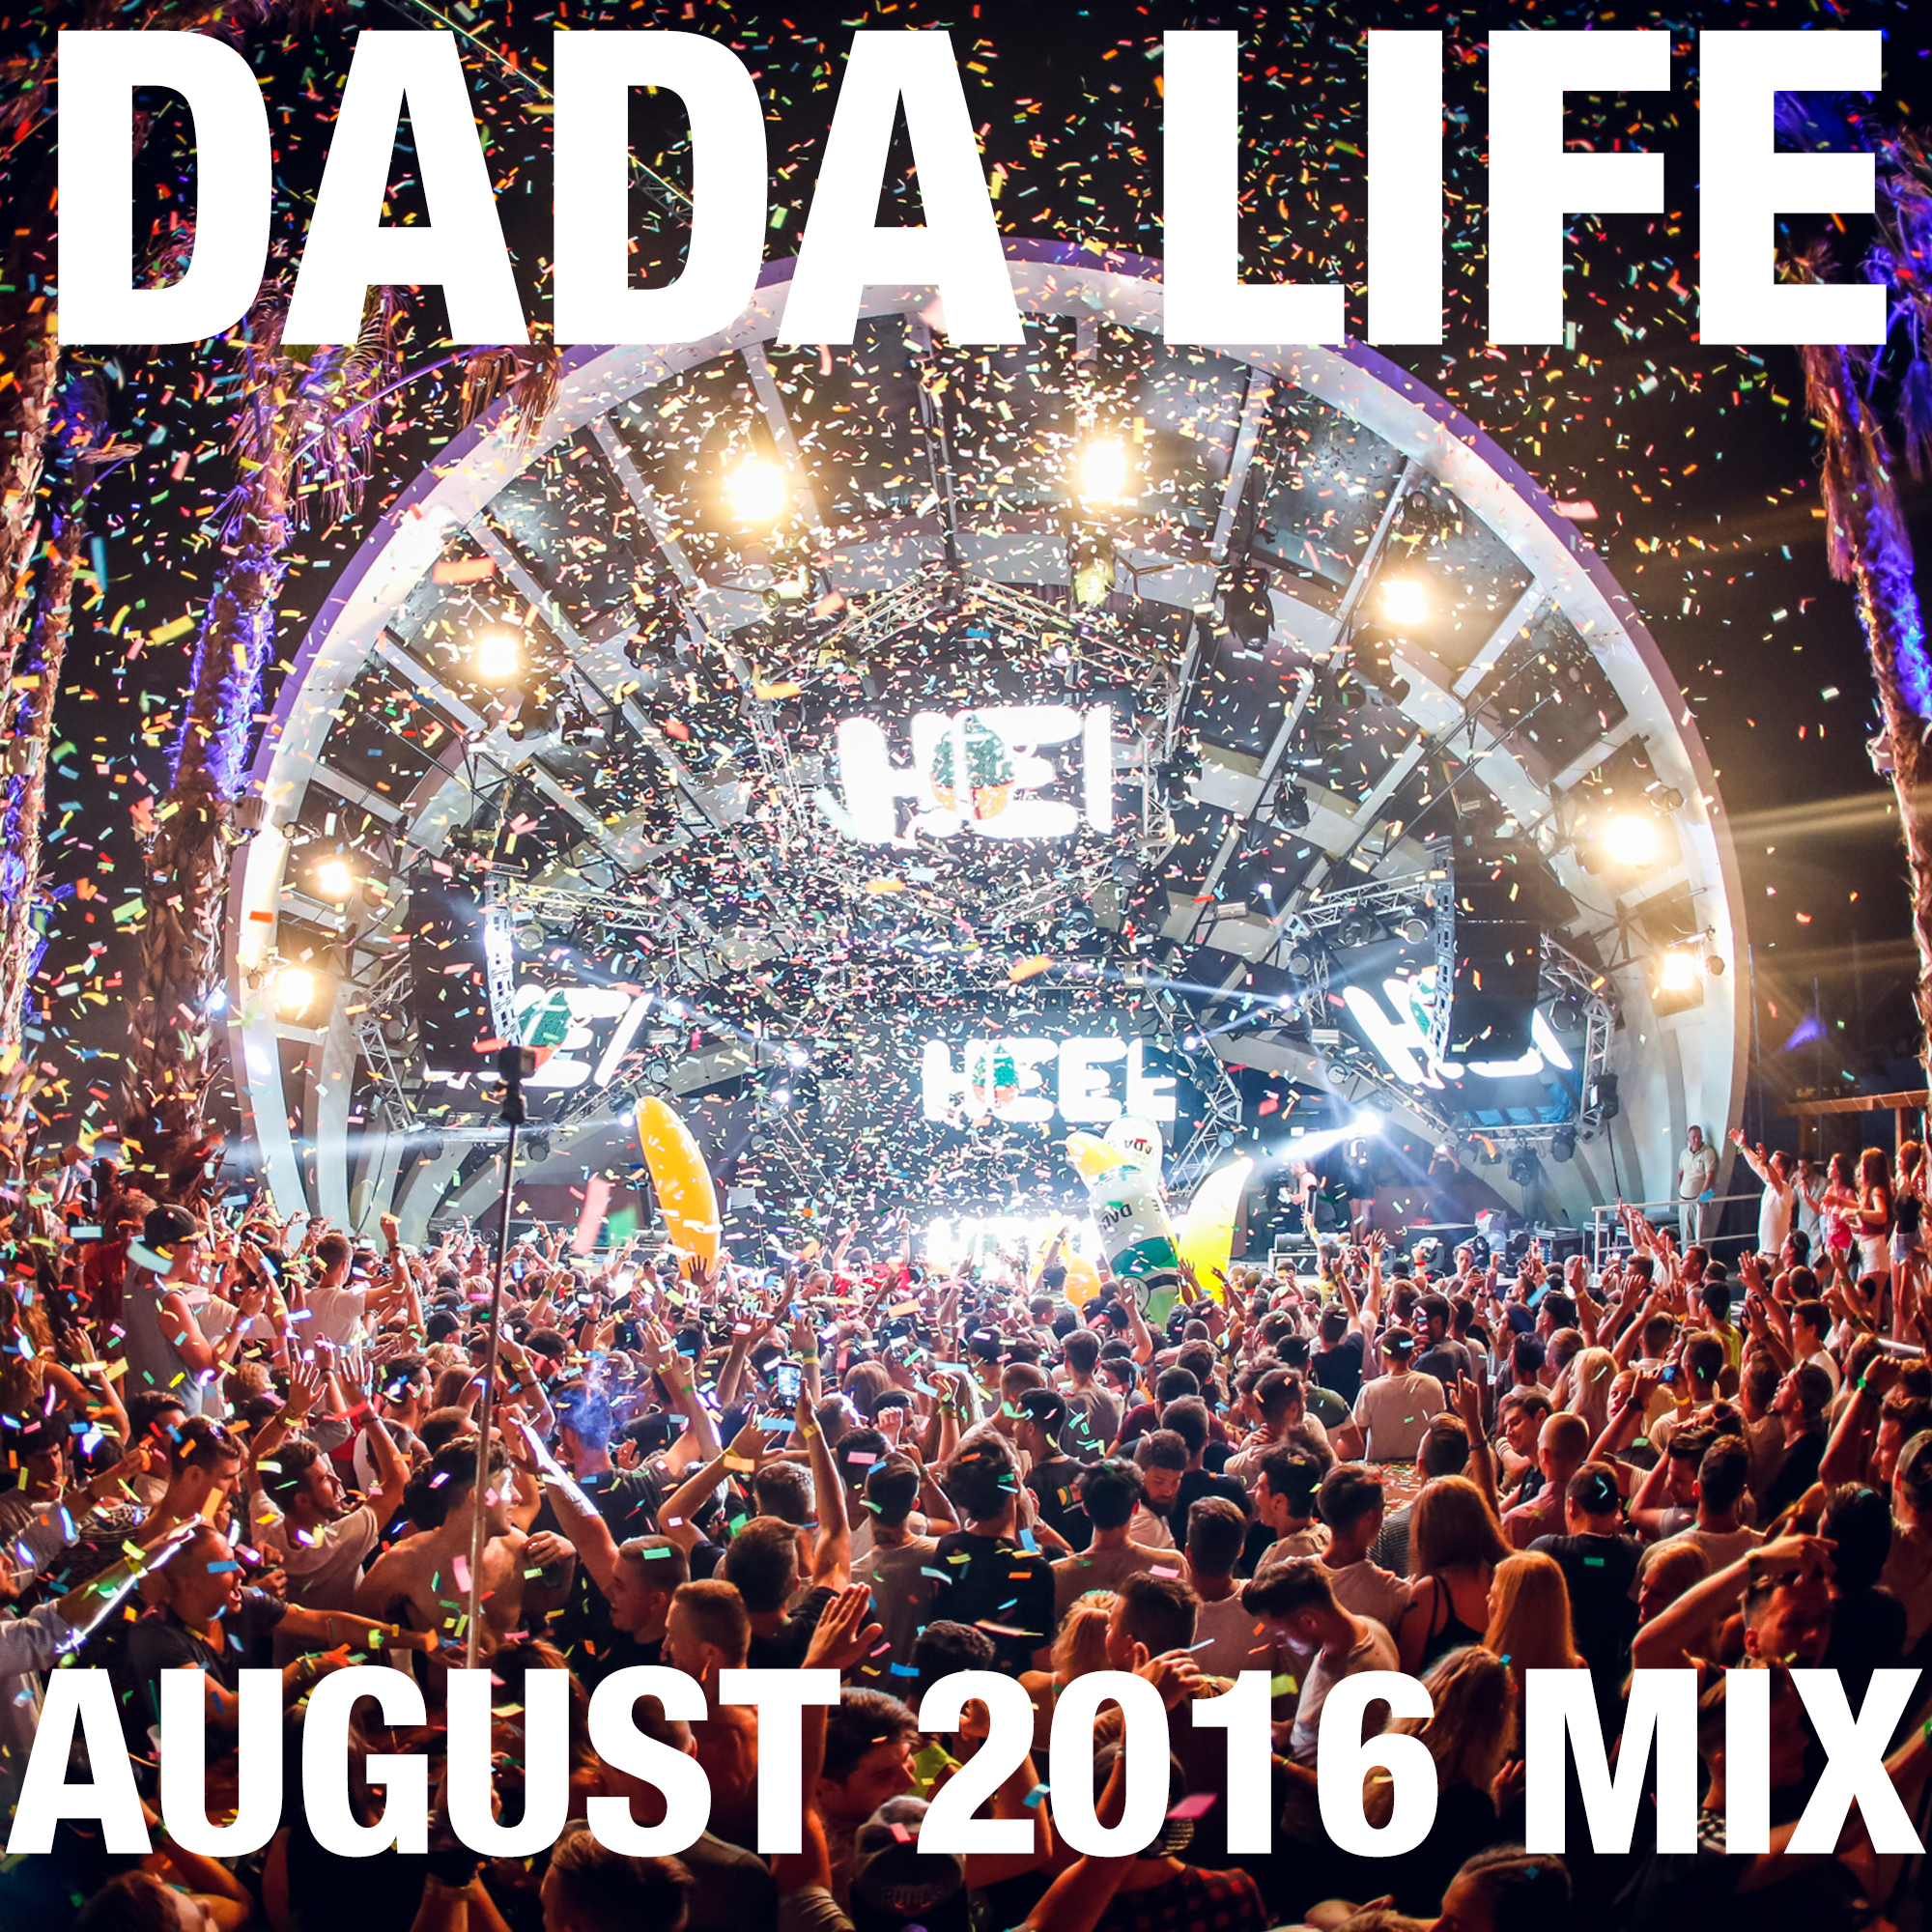 August 2016 Mix